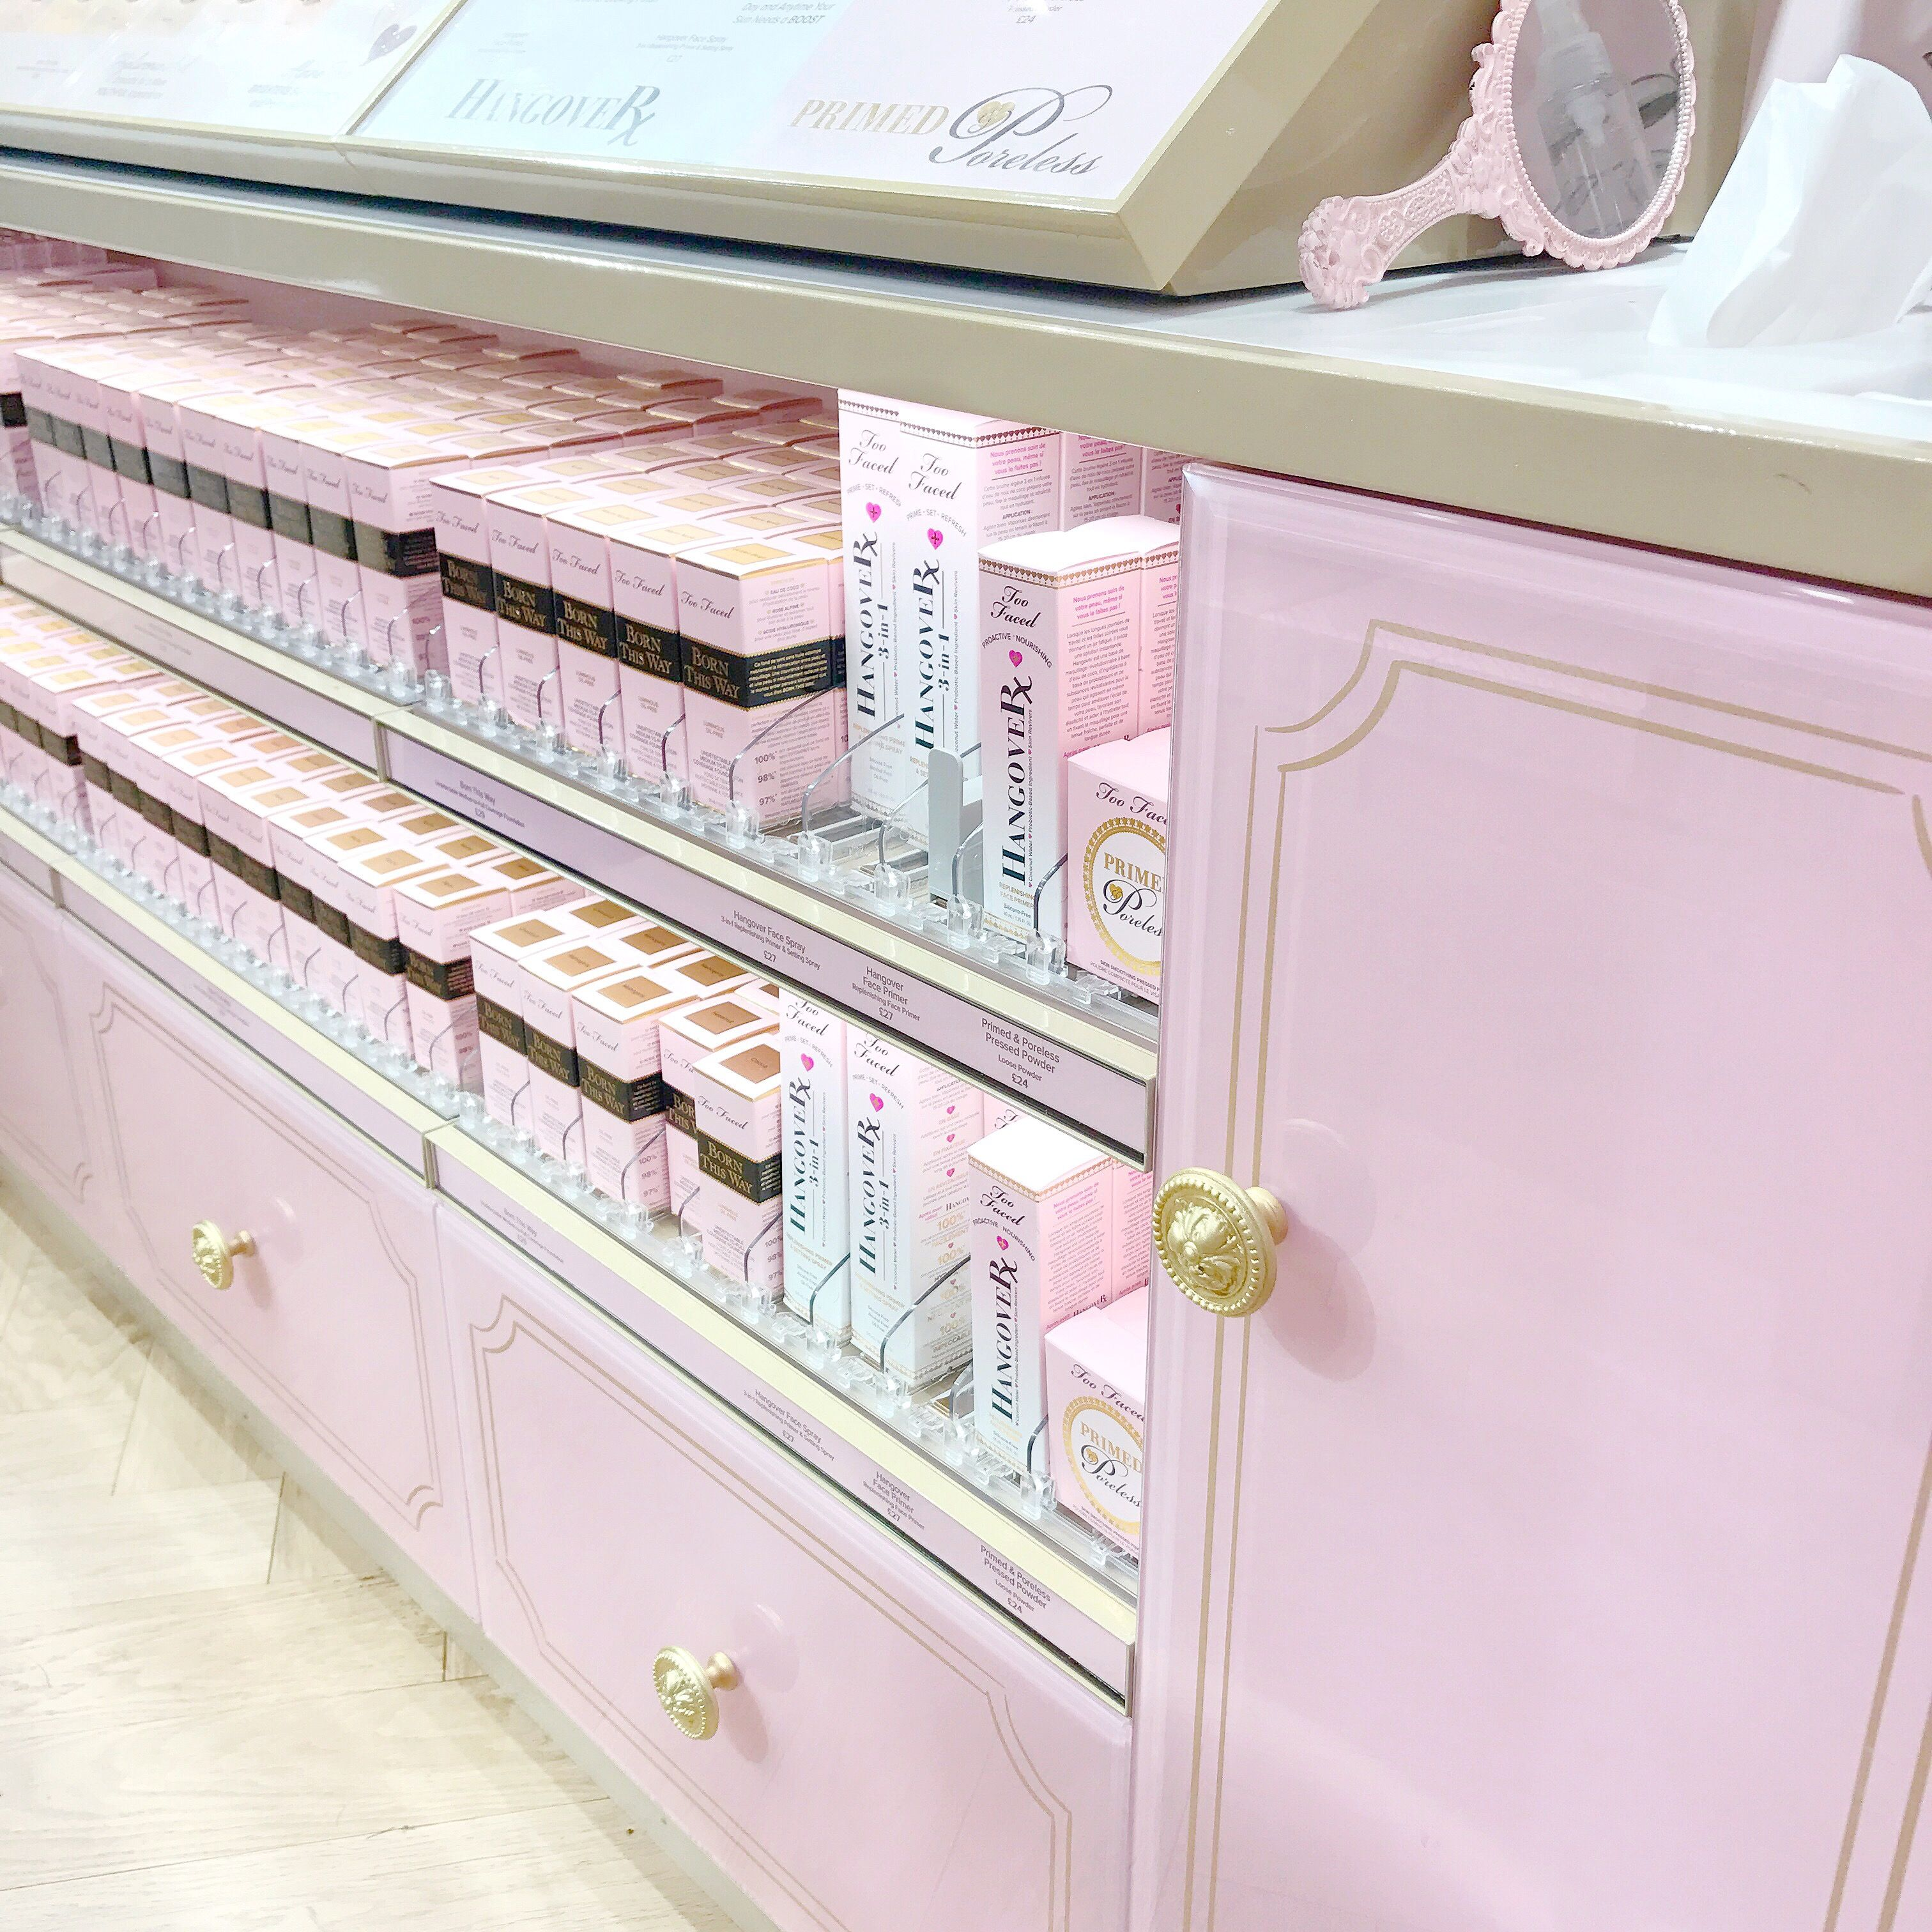 The Too Faced Carnaby Boudoir Store, Pink Makeup Counter | Love Catherine